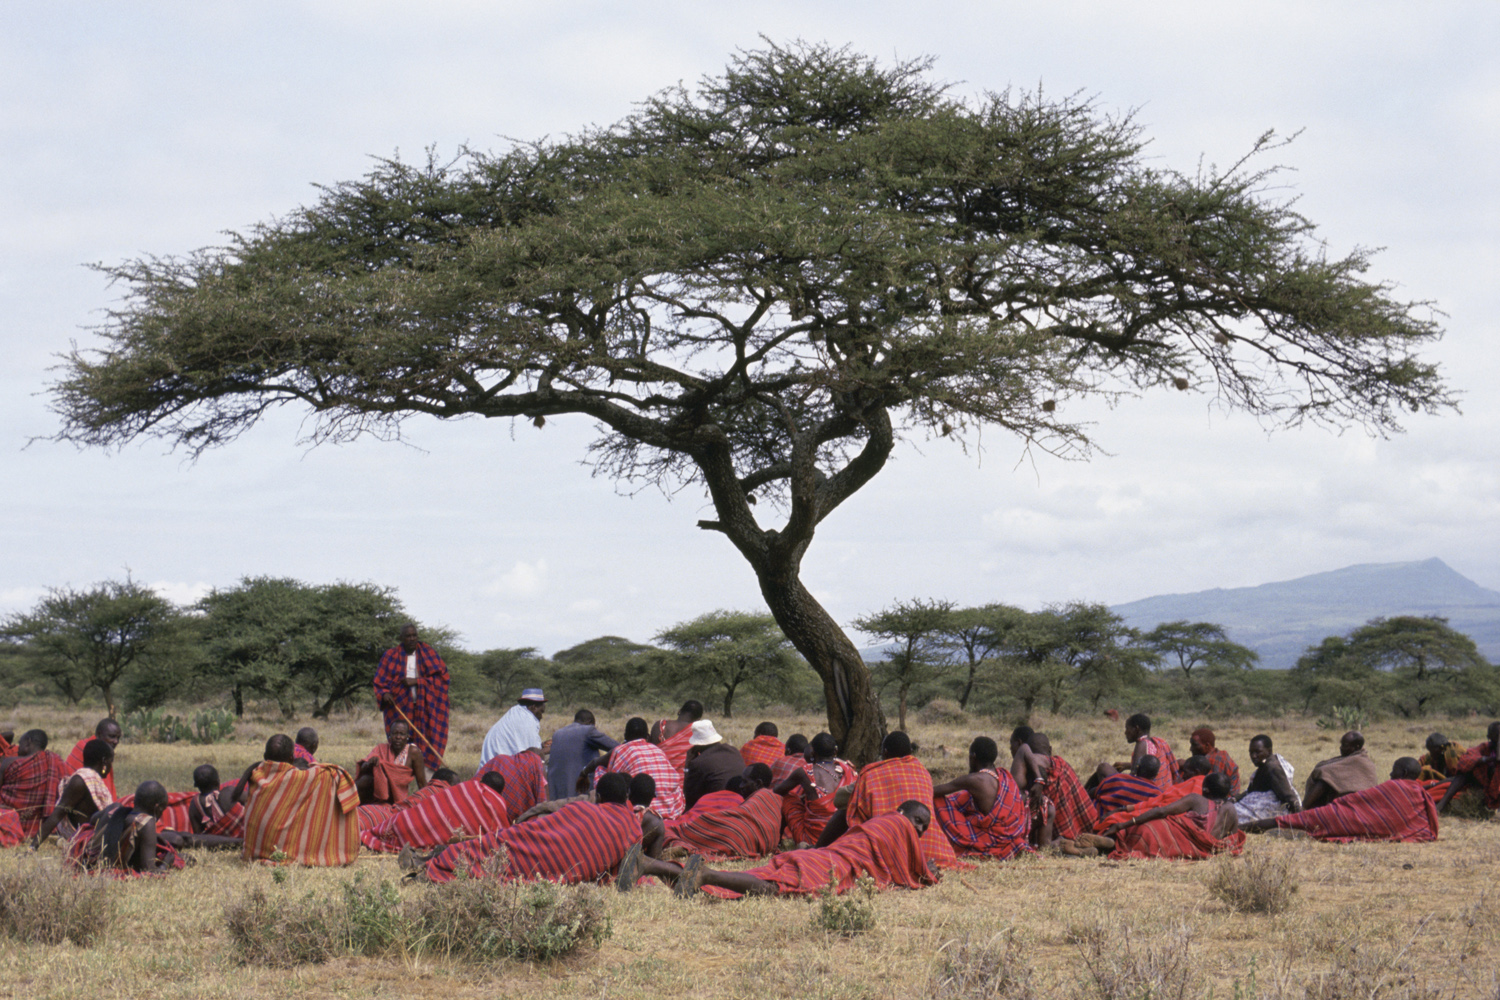 Maasai men meet under an Acacia tree for a community meeting